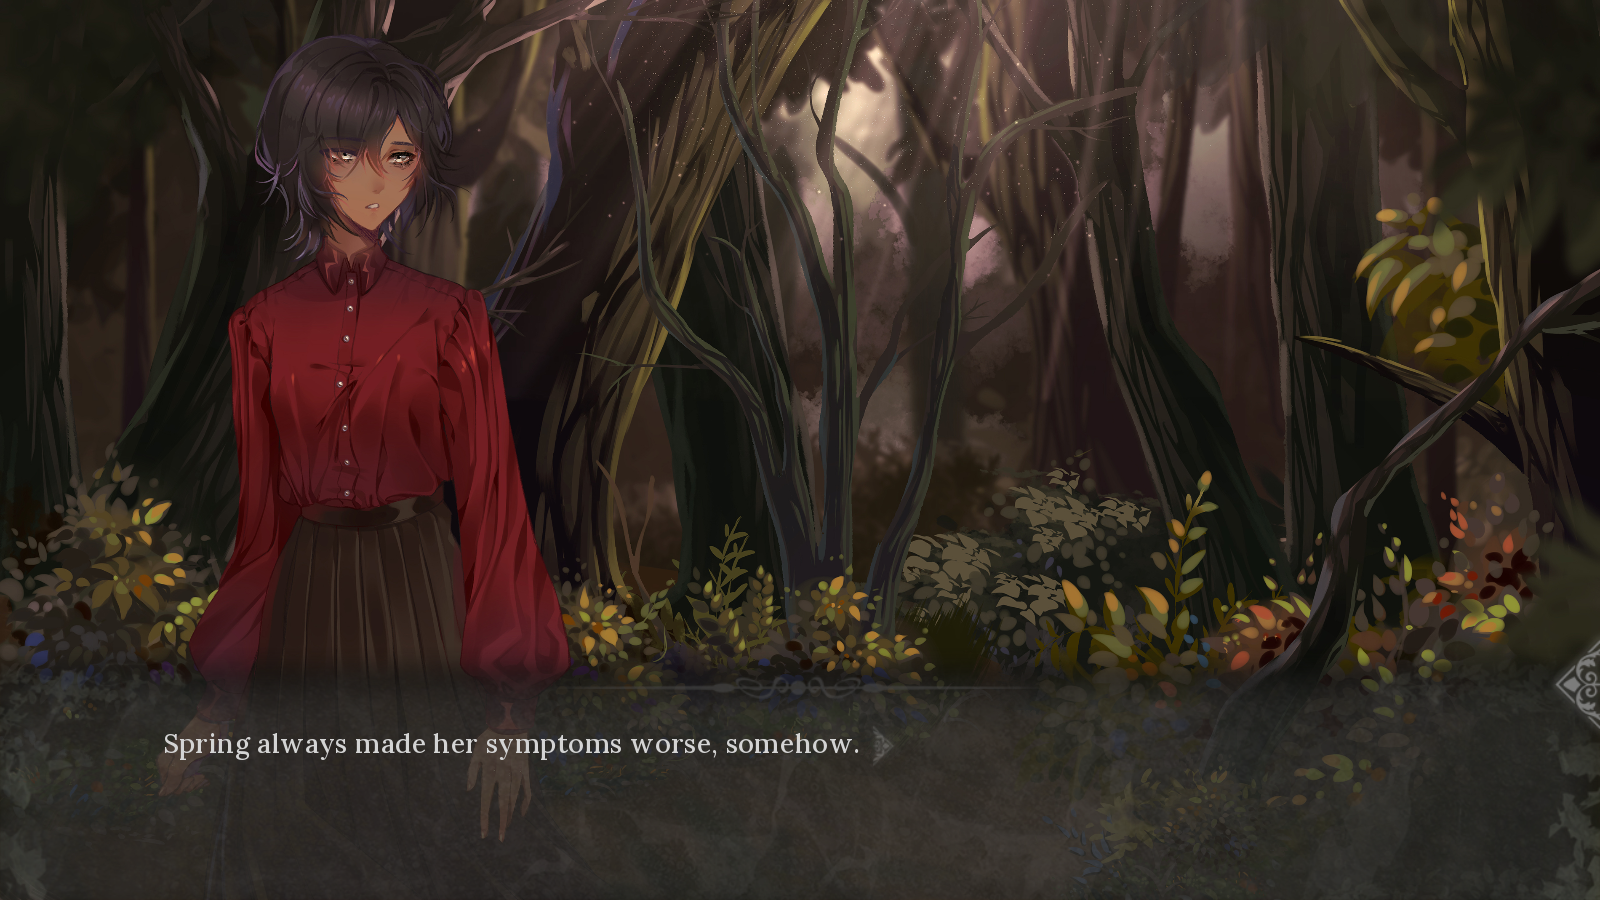 CG of Esther in the afternoon forest. Narrator: Spring always made her symptoms worse, somehow.